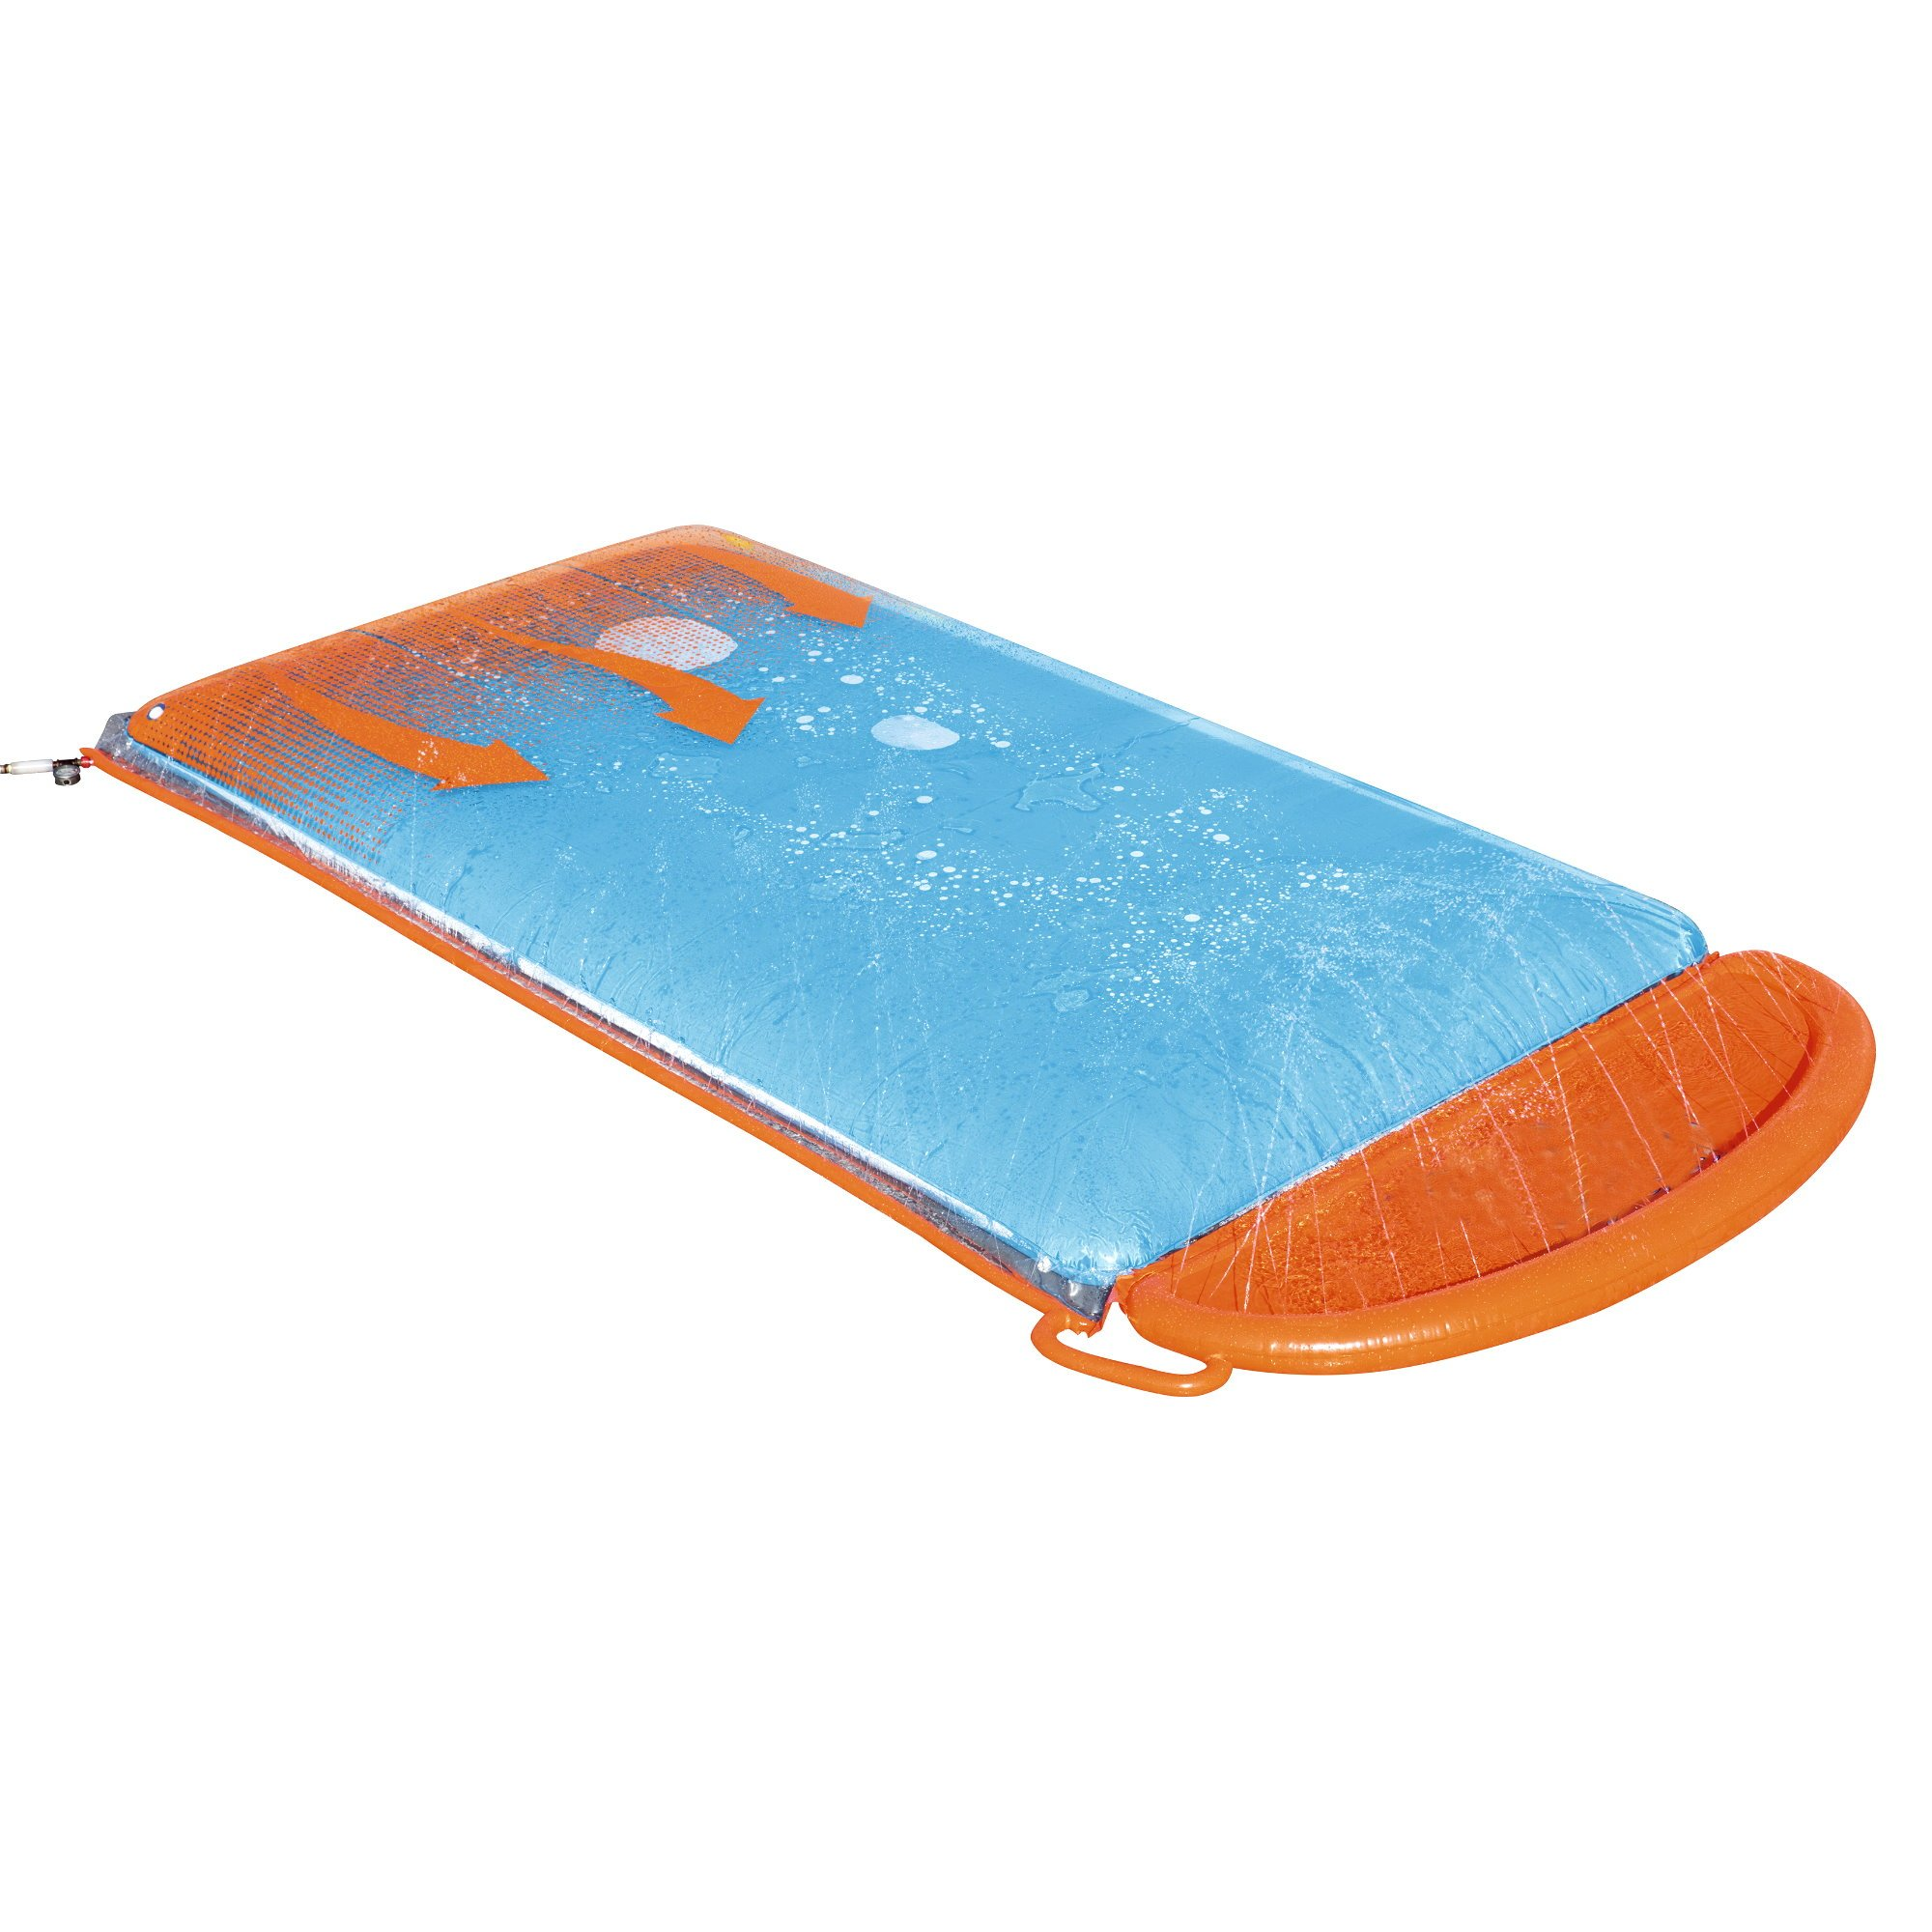 Inflatable Slip N Slide. This Big Sprinkler Race Kiddie Blow Up Above Ground Long Waterslide is Great for Kids & Children, Aqua Splash to Have Outdoor Water Fun with All Family. (Triple Blobzter) by Kids-Inflatable-Pool